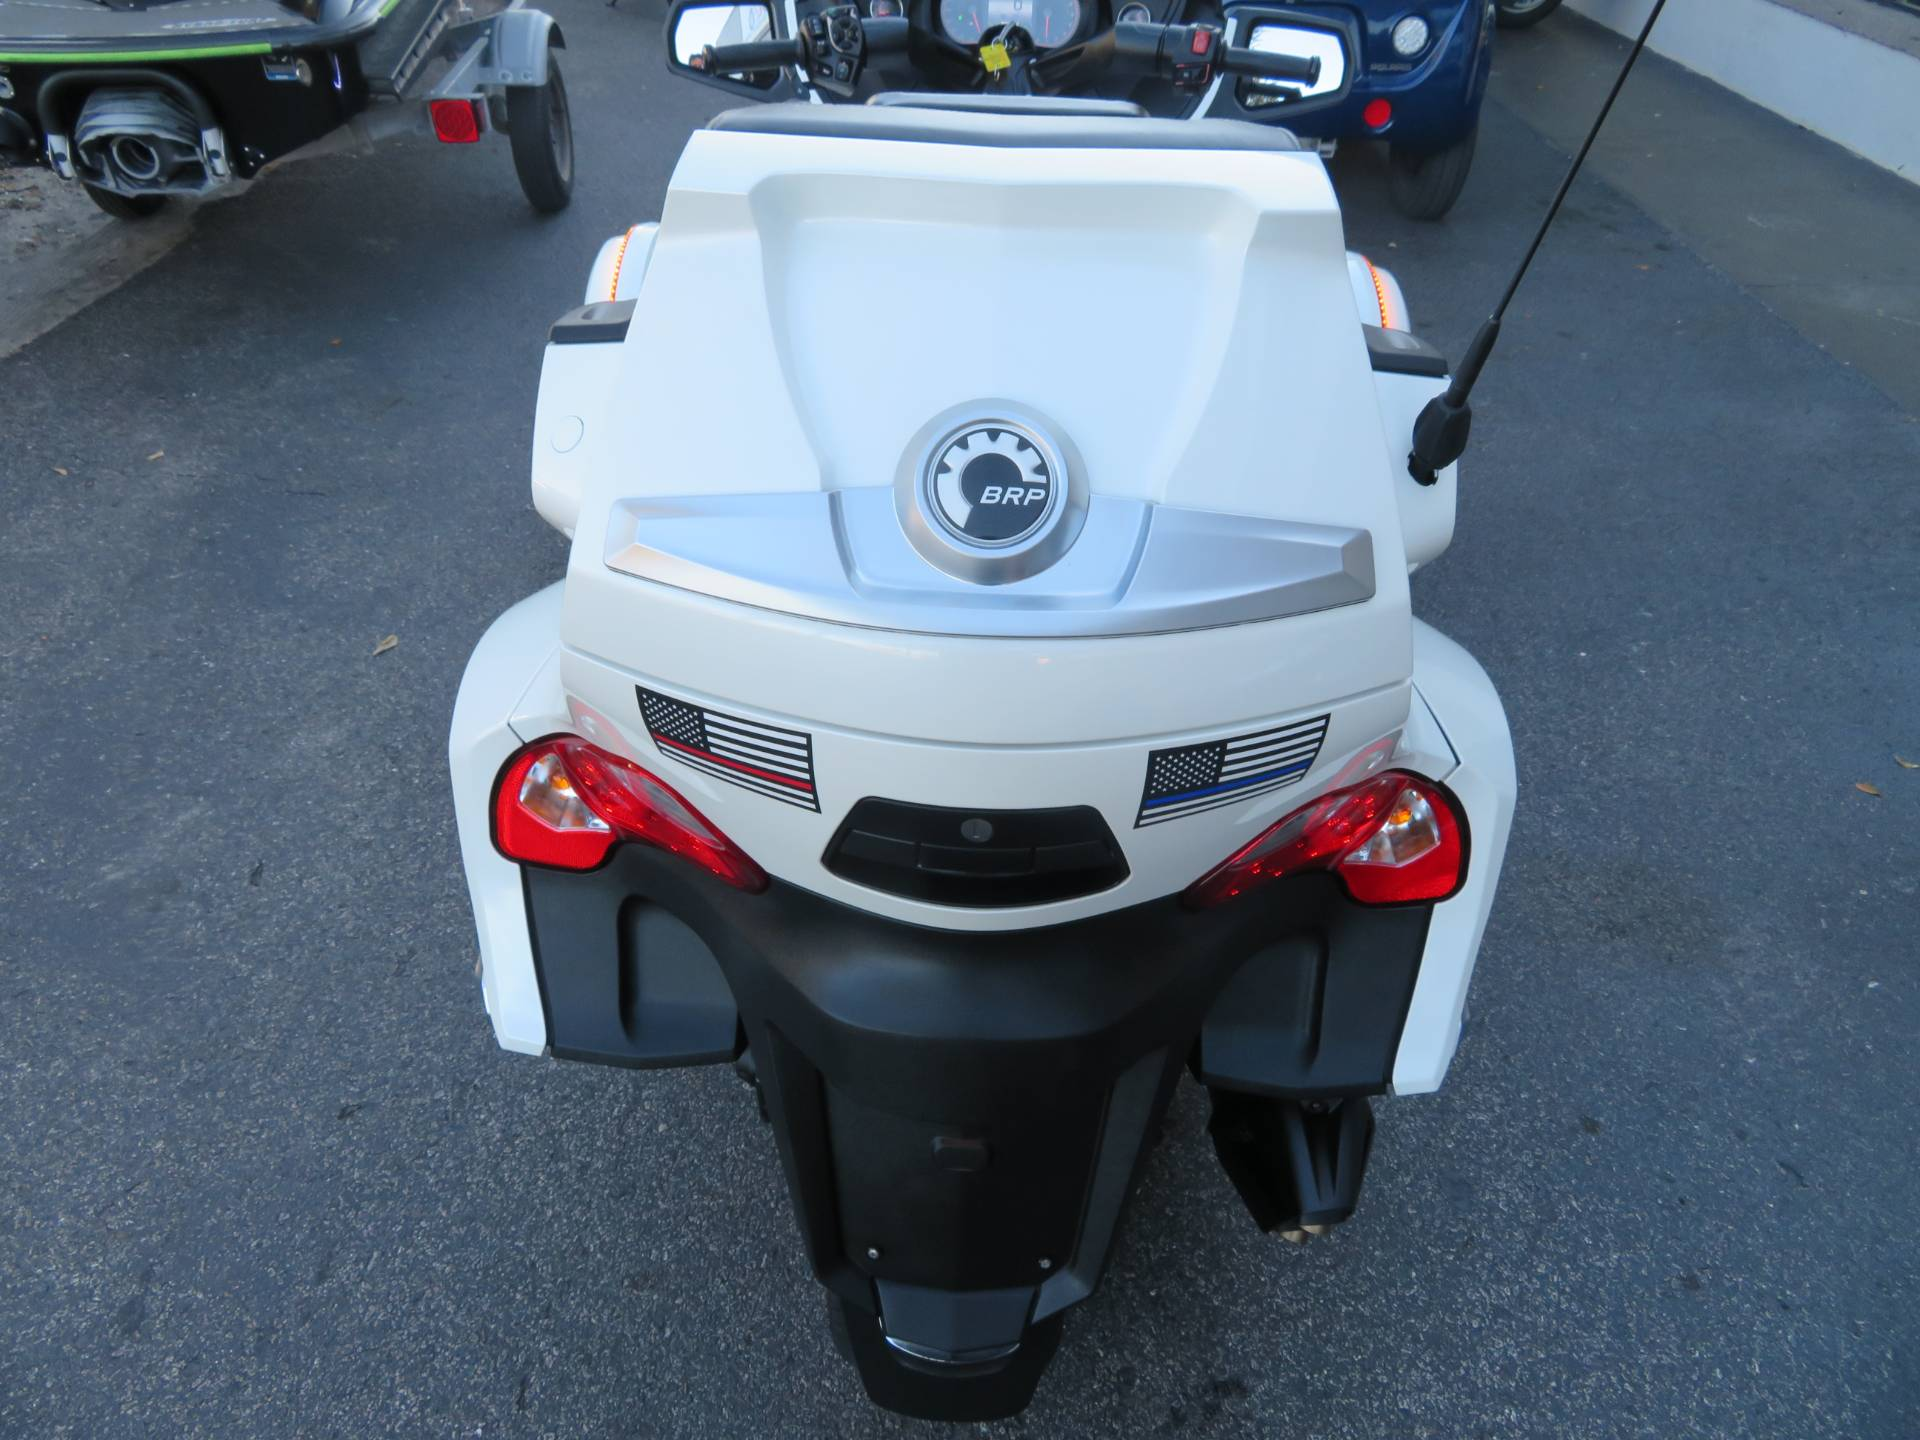 2016 Can-Am Spyder RT-S SE6 in Sanford, Florida - Photo 23